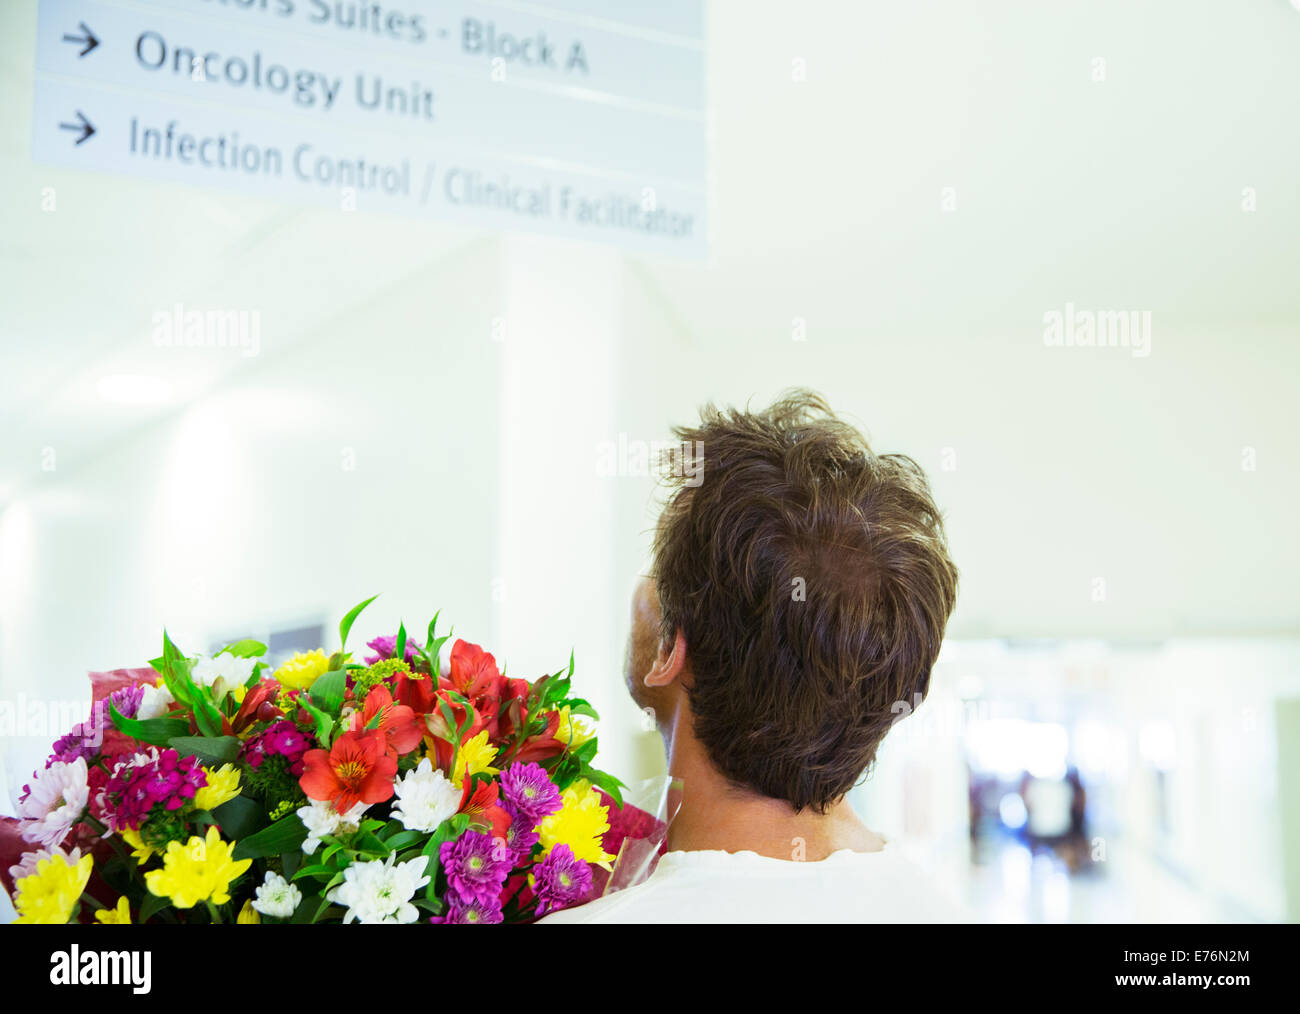 Man carrying bouquet of flowers in hospital Stock Photo